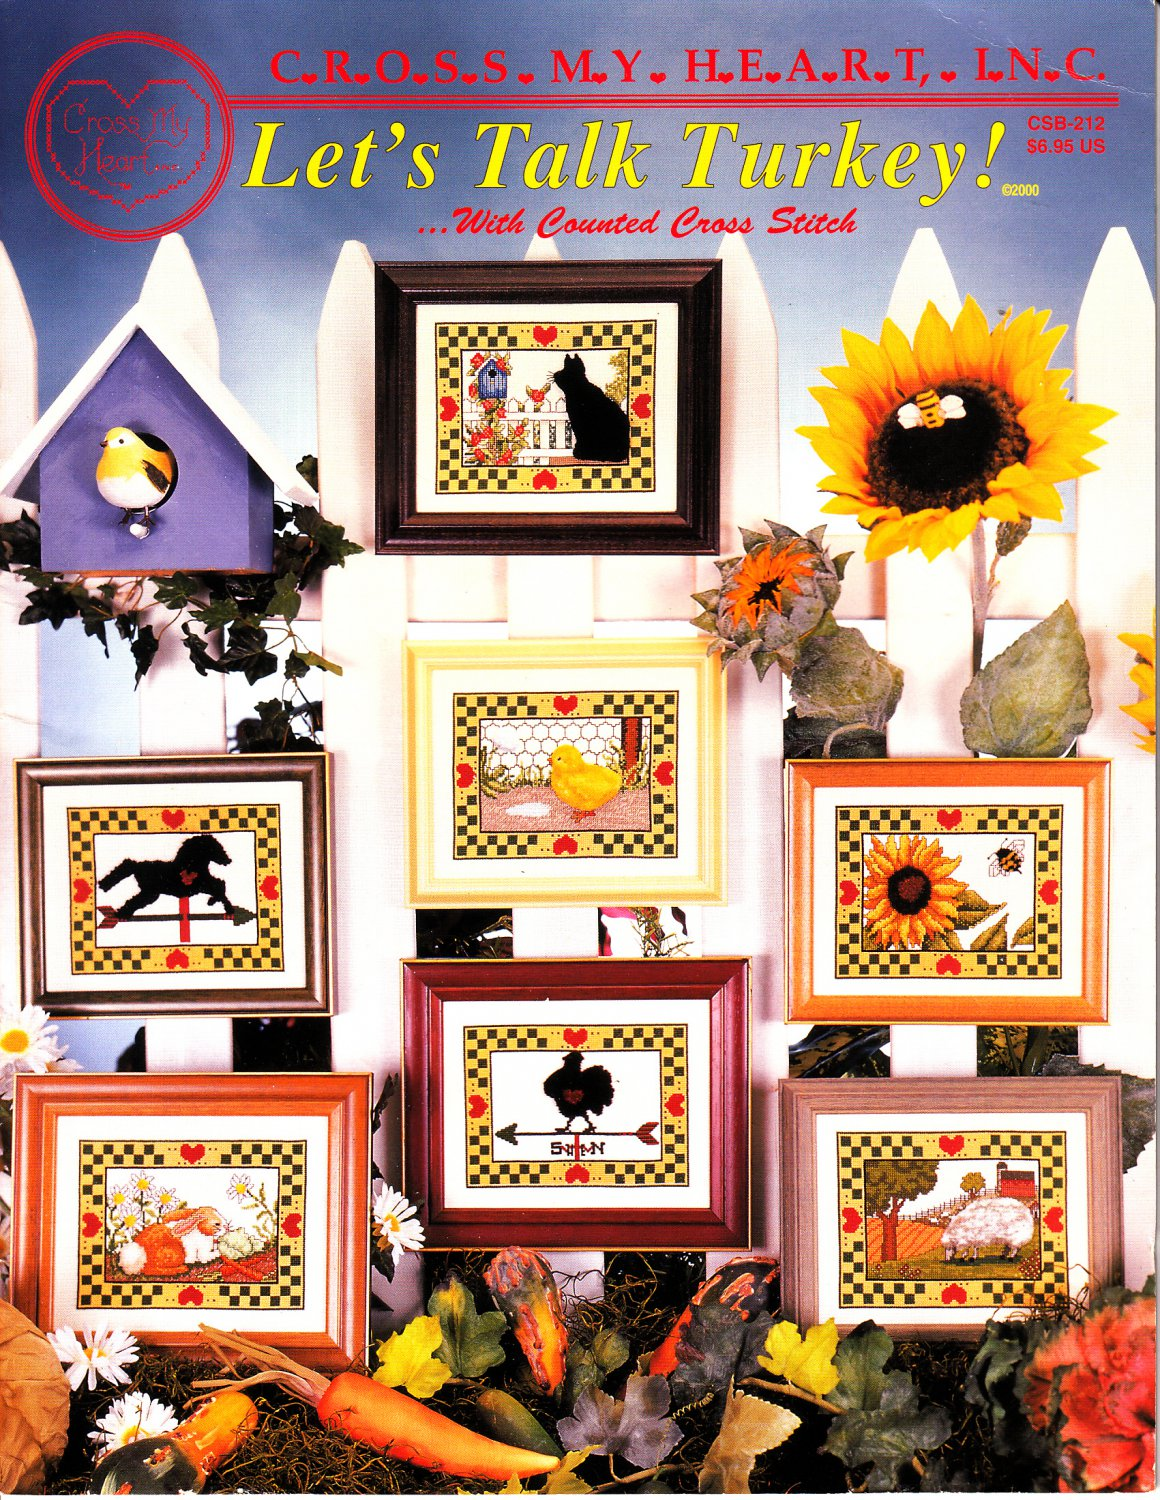 Let's Talk Turkey! With Counted Cross Stitch (Cross My Heart XS, 2000)